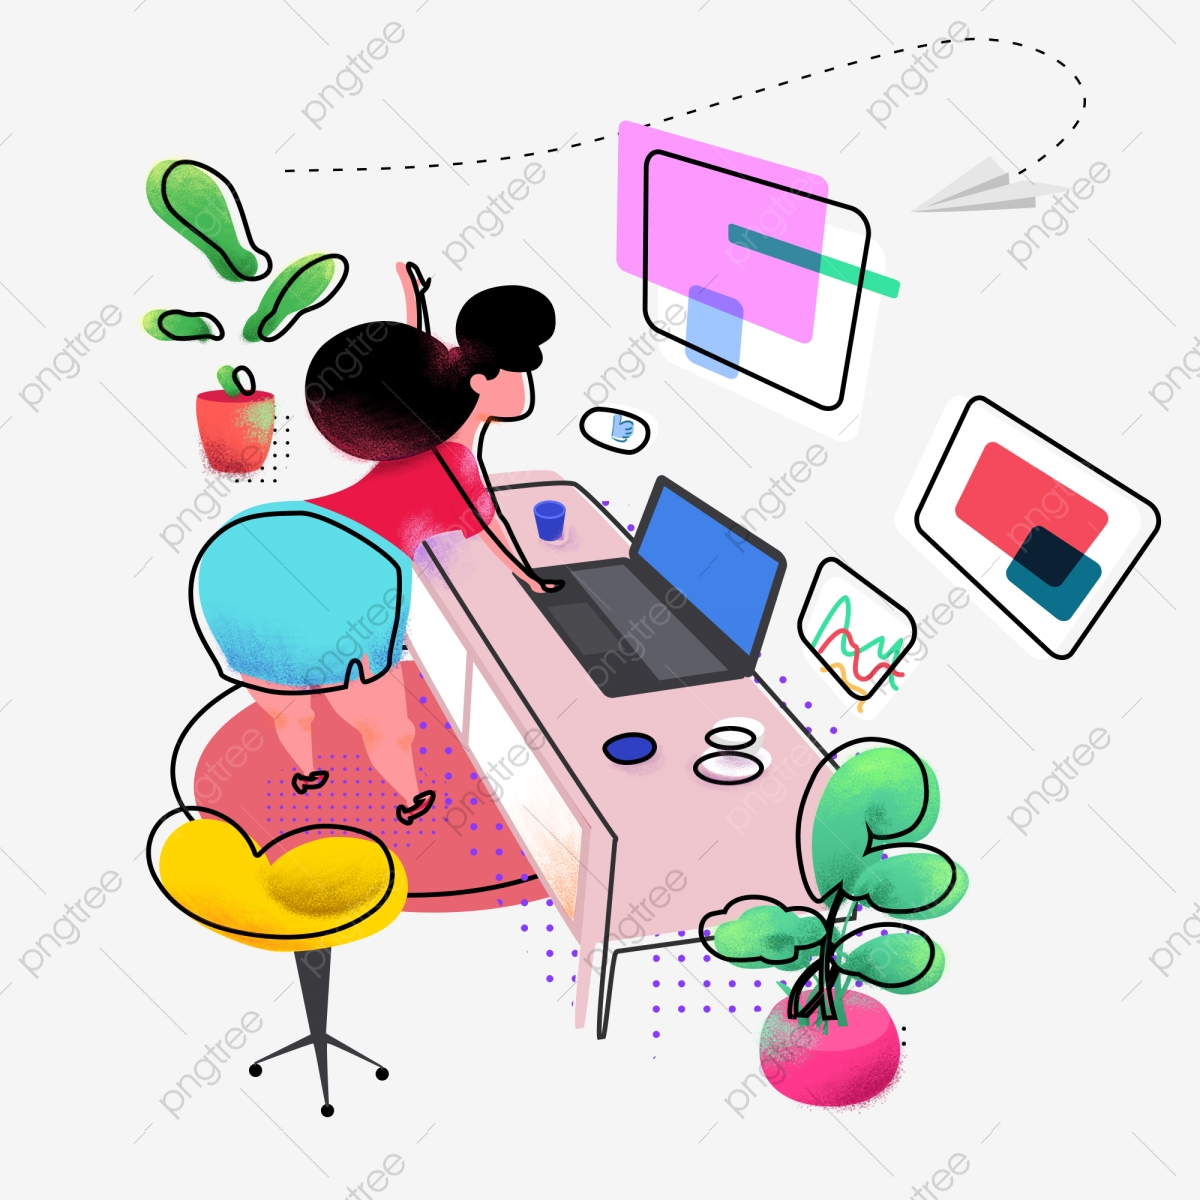 Free Office Background Cliparts, Download Free Clip Art, Free Clip Art on  Clipart Library